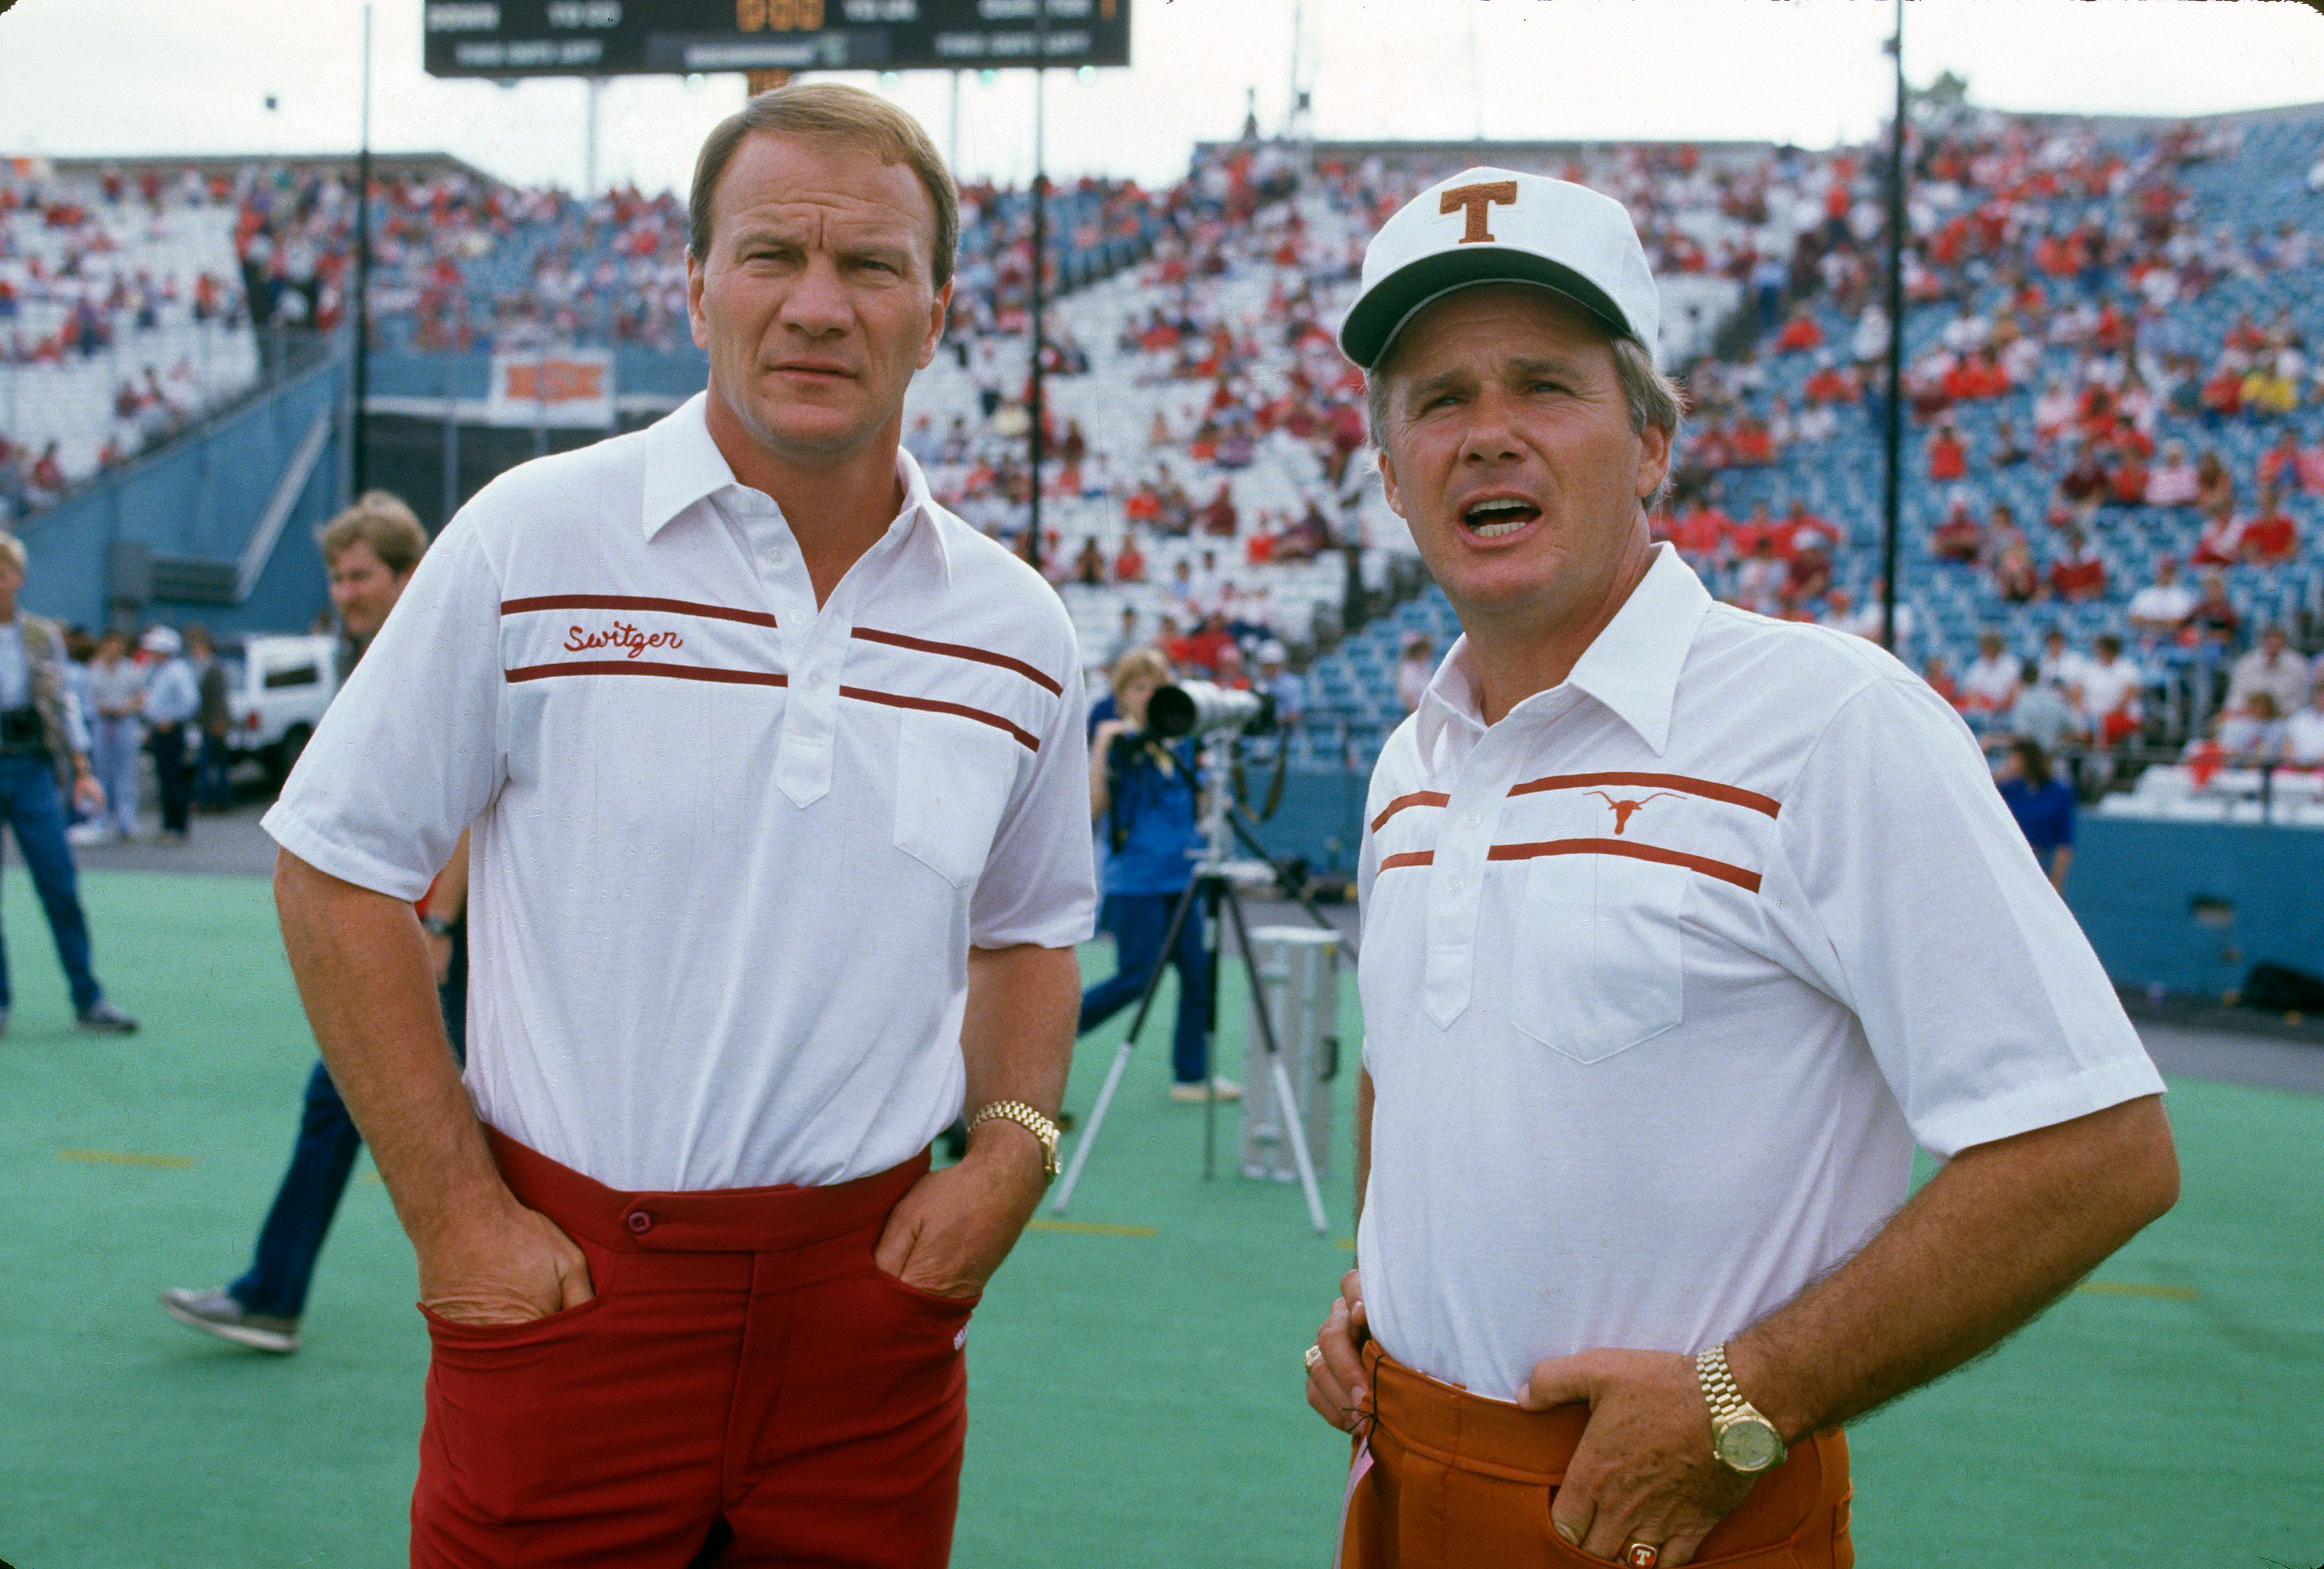 Barry Switzer of the University of Oklahoma and Fred Akers looks on prior to their NCAA football game October 11, 1986, in Dallas, Texas.   Photo: Getty Images